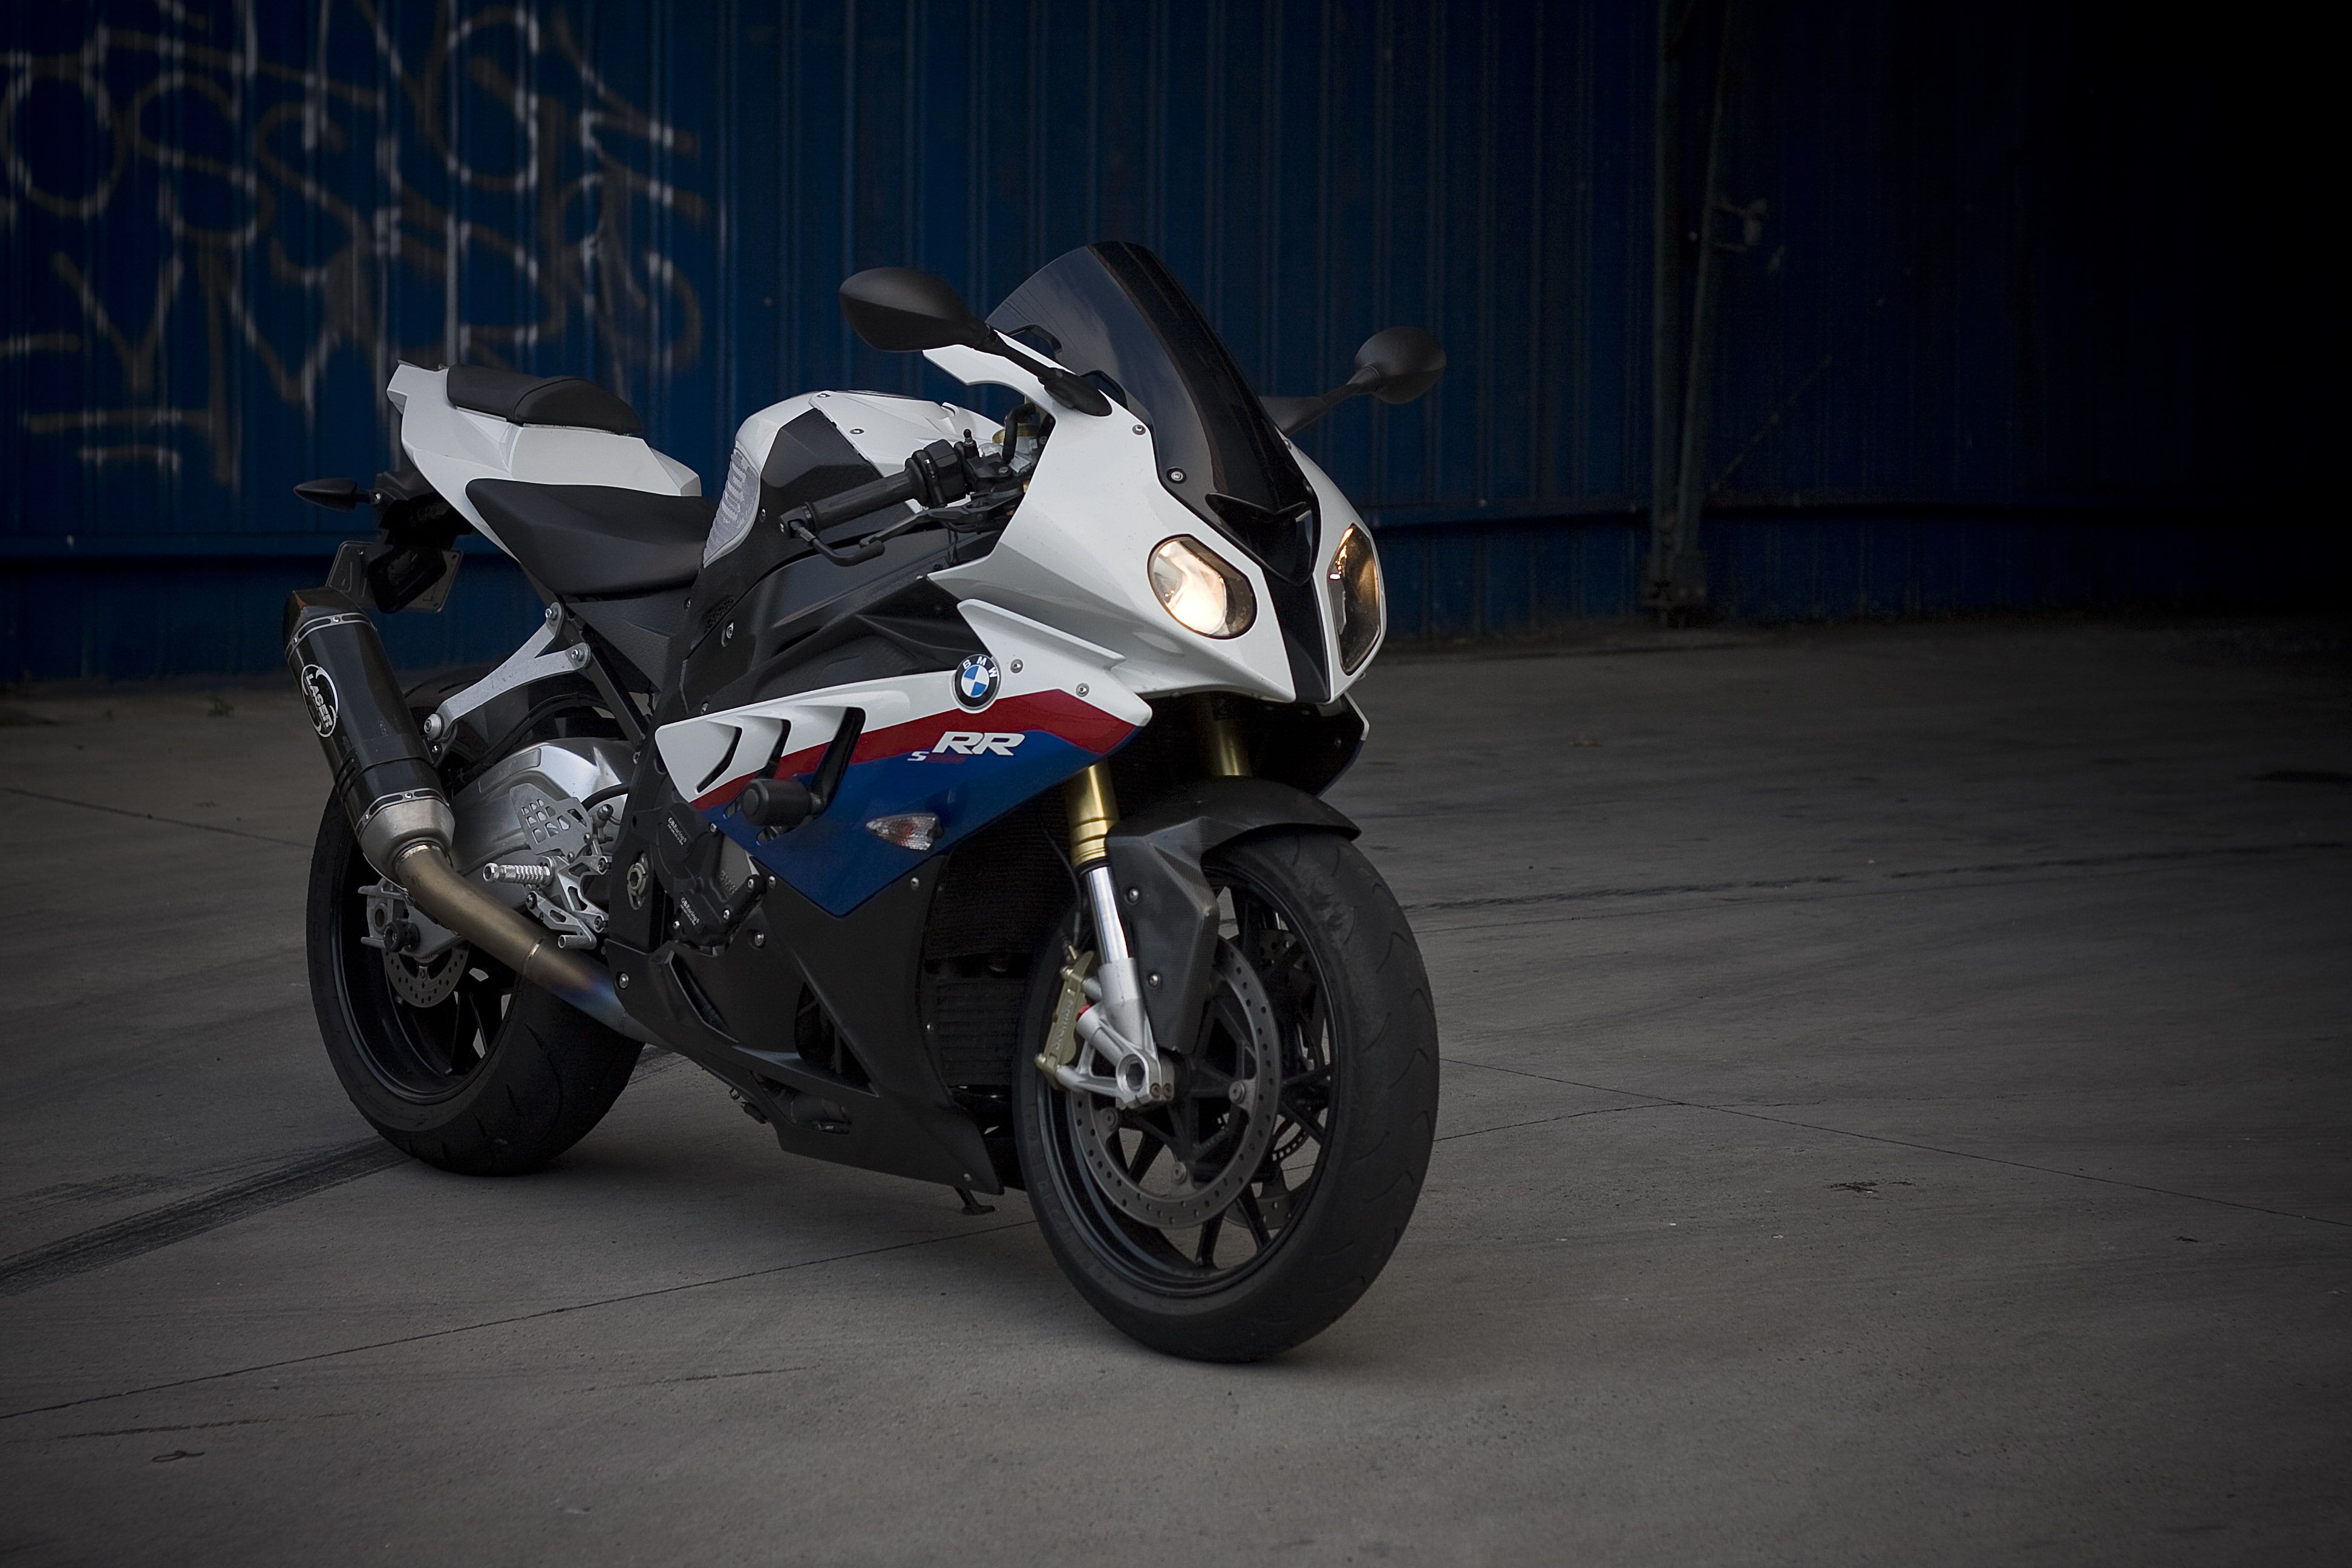 Wallpaper Motorcycle Bmw Bmw S1000rr Transportation Mode Of Transportation In 2020 Bmw S1000rr Motorcycle Wallpaper Bmw Wallpapers